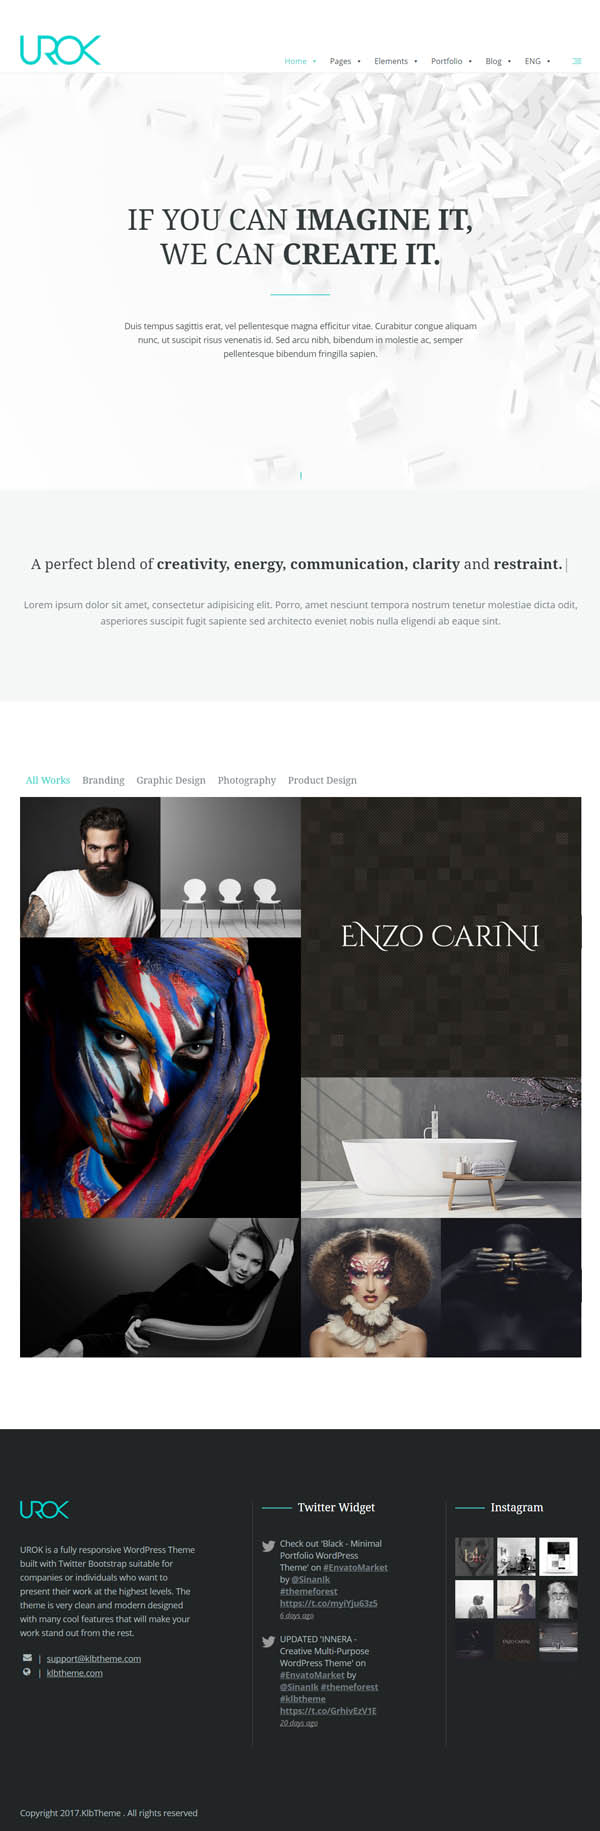 UROK: Responsive Multipurpose WordPress Theme